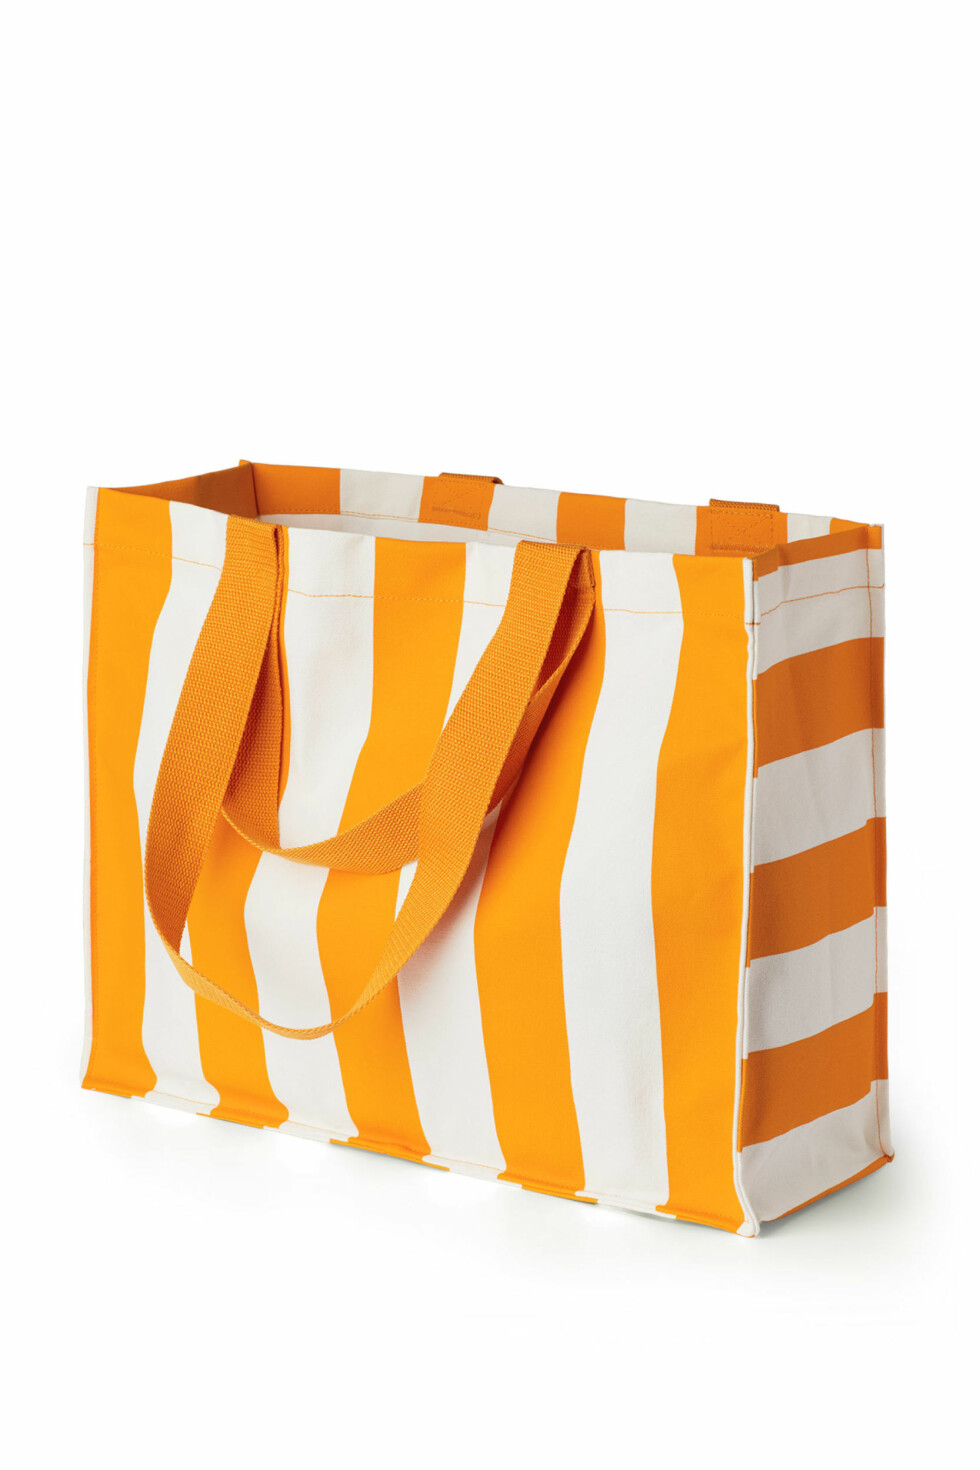 Bag fra Weekday |350,-| https://www.weekday.com/en_sek/women/categories/all/product.gamma-striped-tote-yellow.0588359002.html